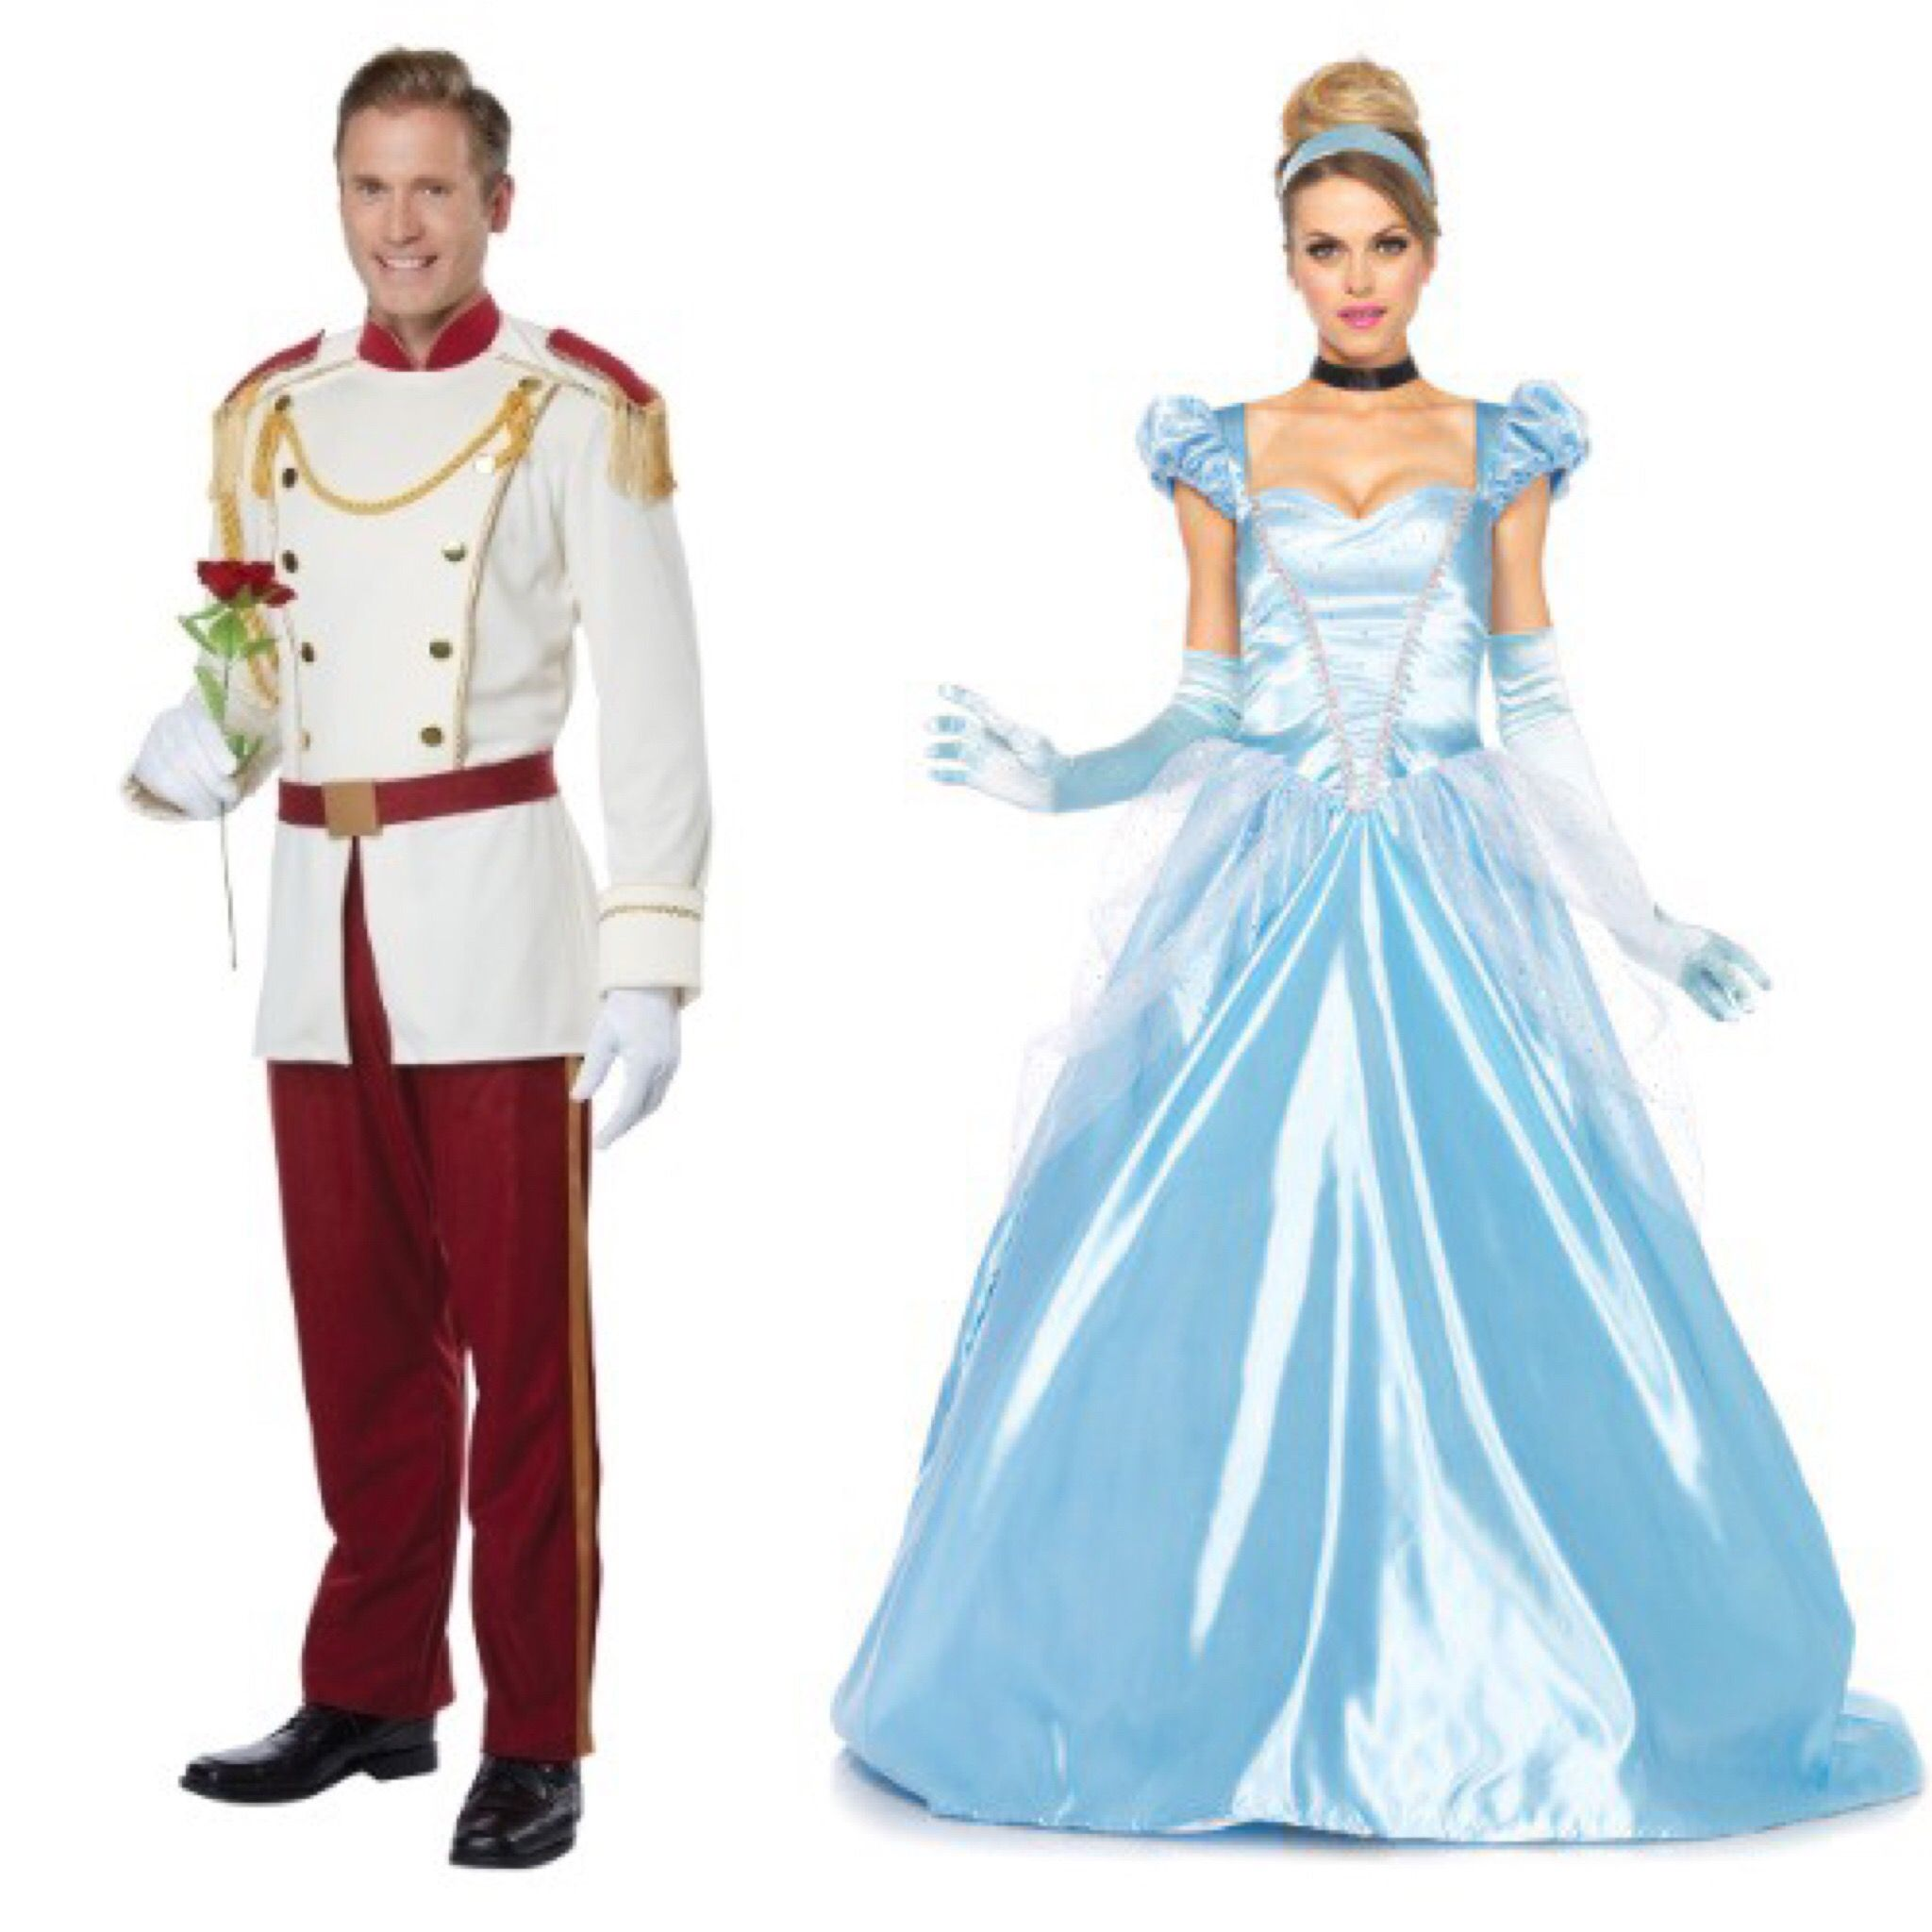 Cinderella and Prince Charming costumes  sc 1 st  Pinterest & Cinderella and Prince Charming costumes | Cinderella | Pinterest ...